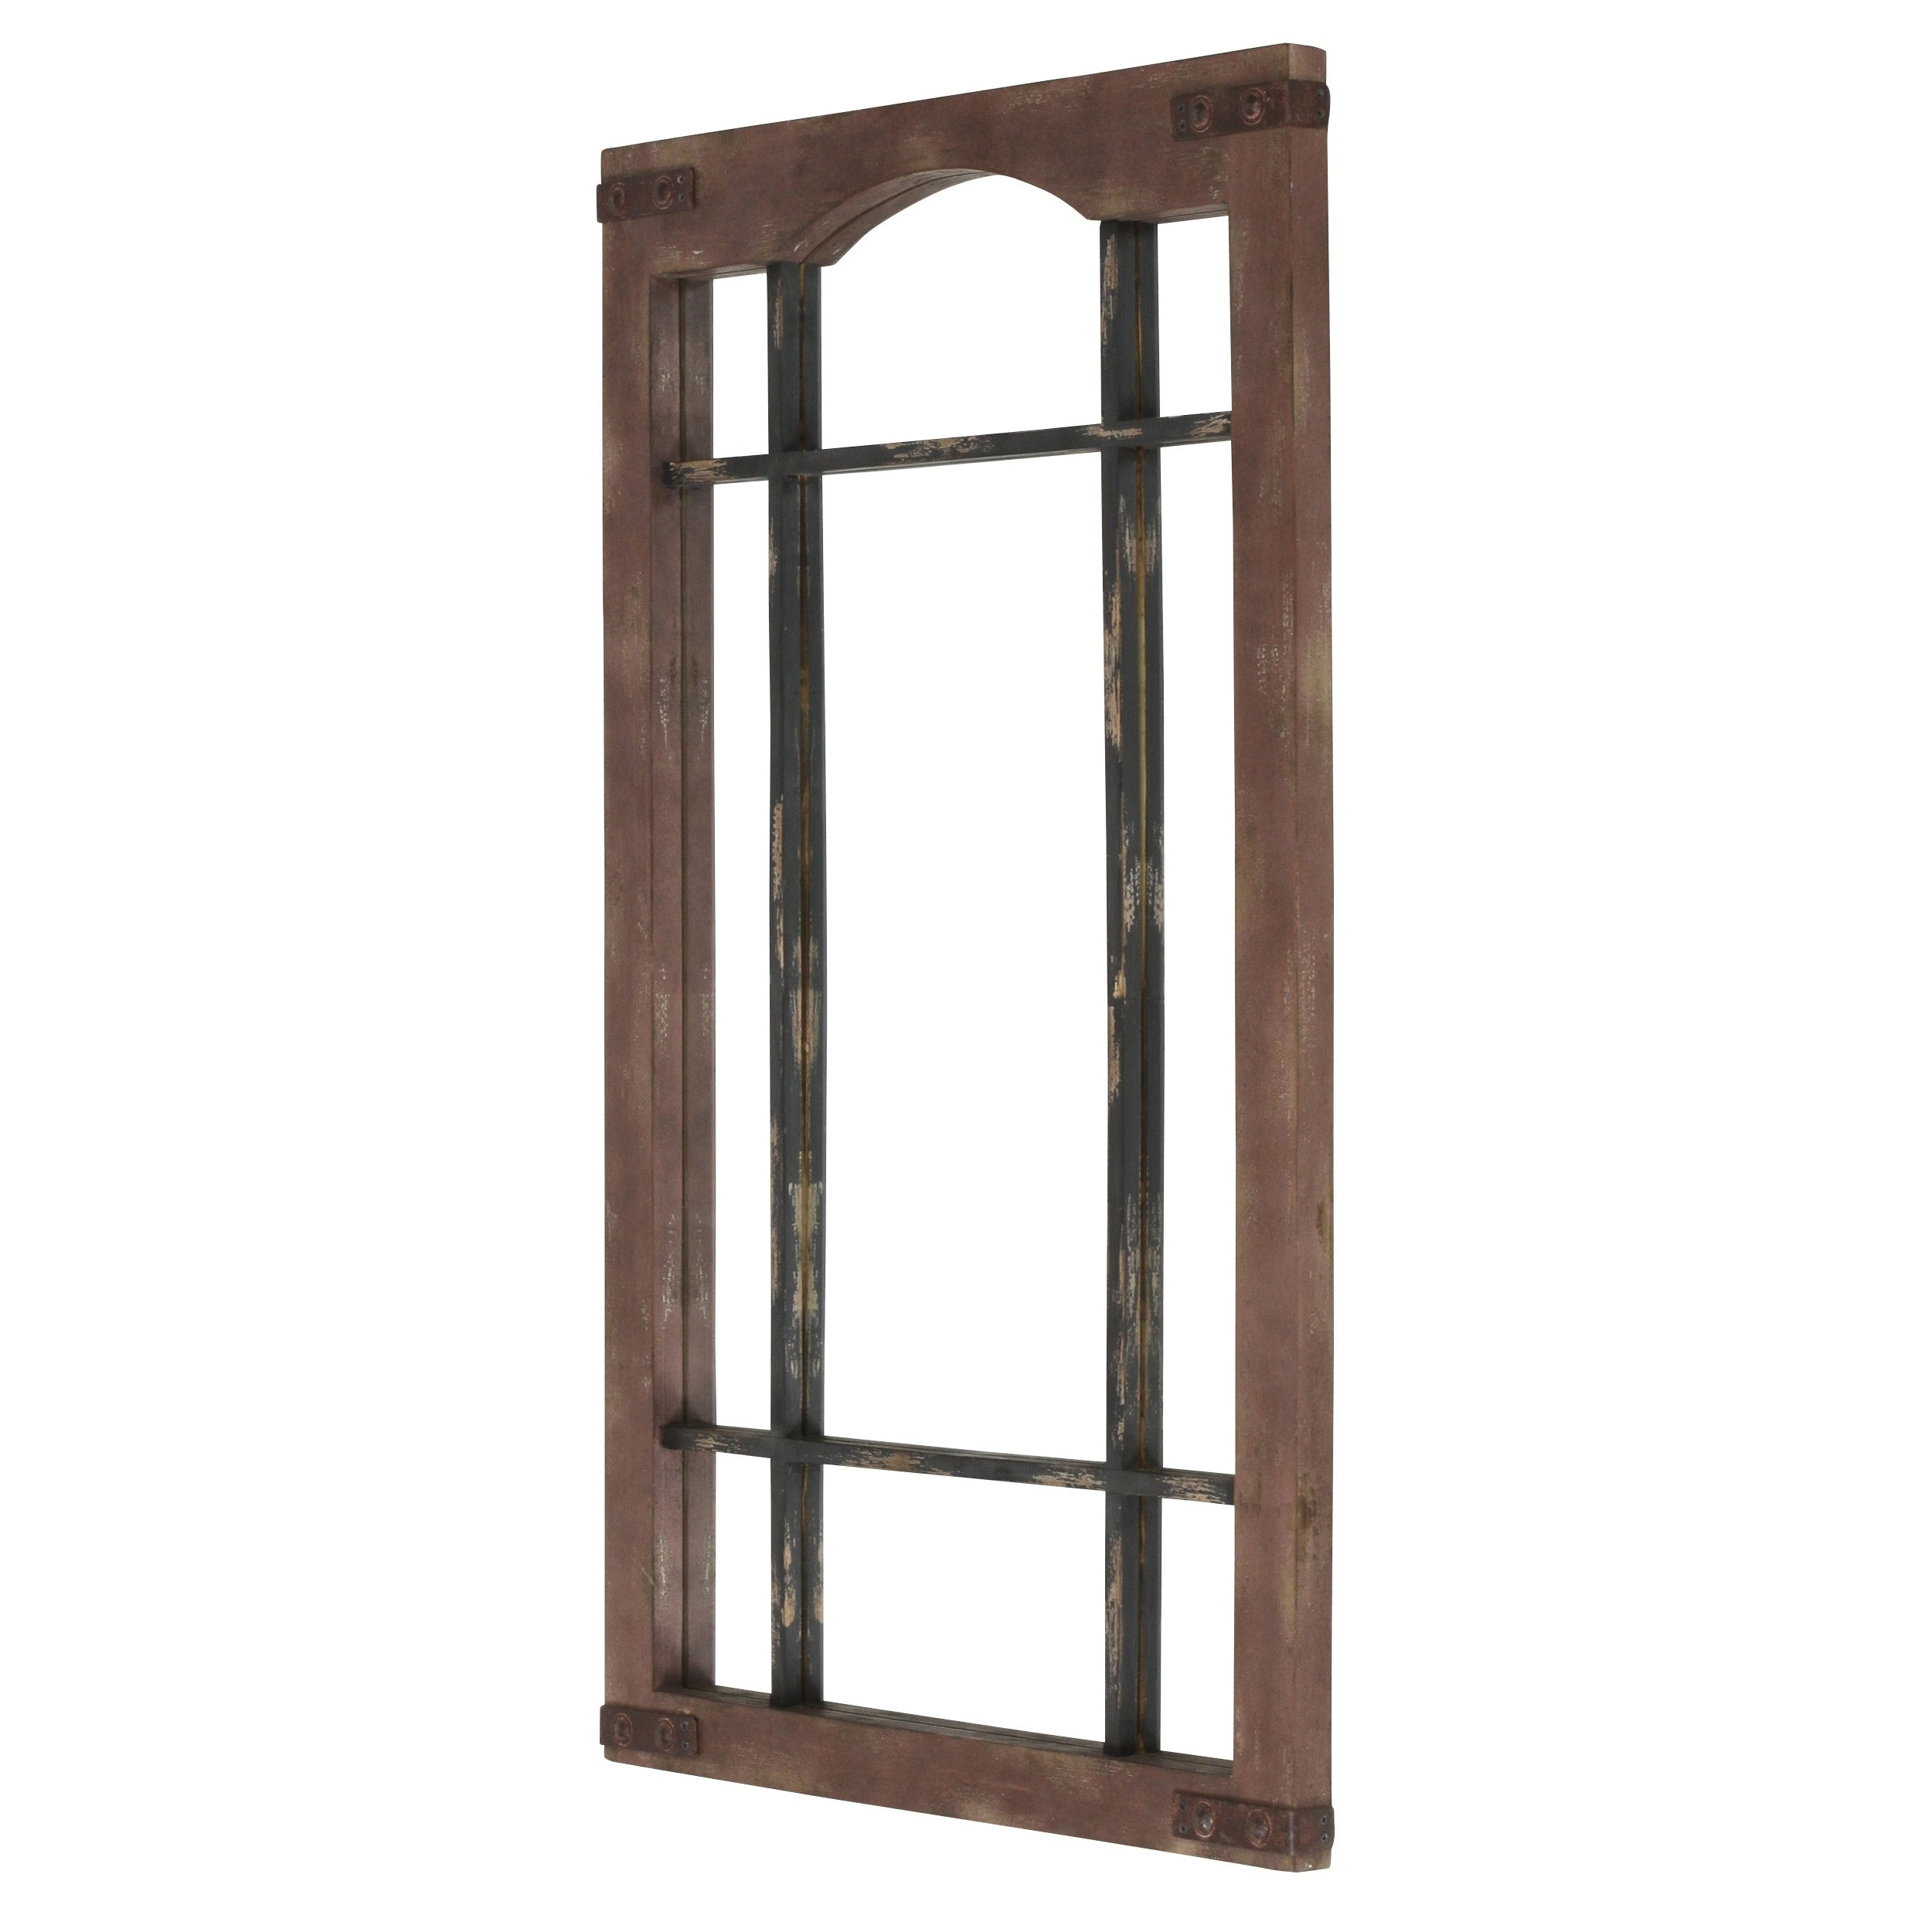 Widely Used Faux Window Wood Wall Mirrors In Sheridan Faux Window Wall Mirror – Brown (View 20 of 20)